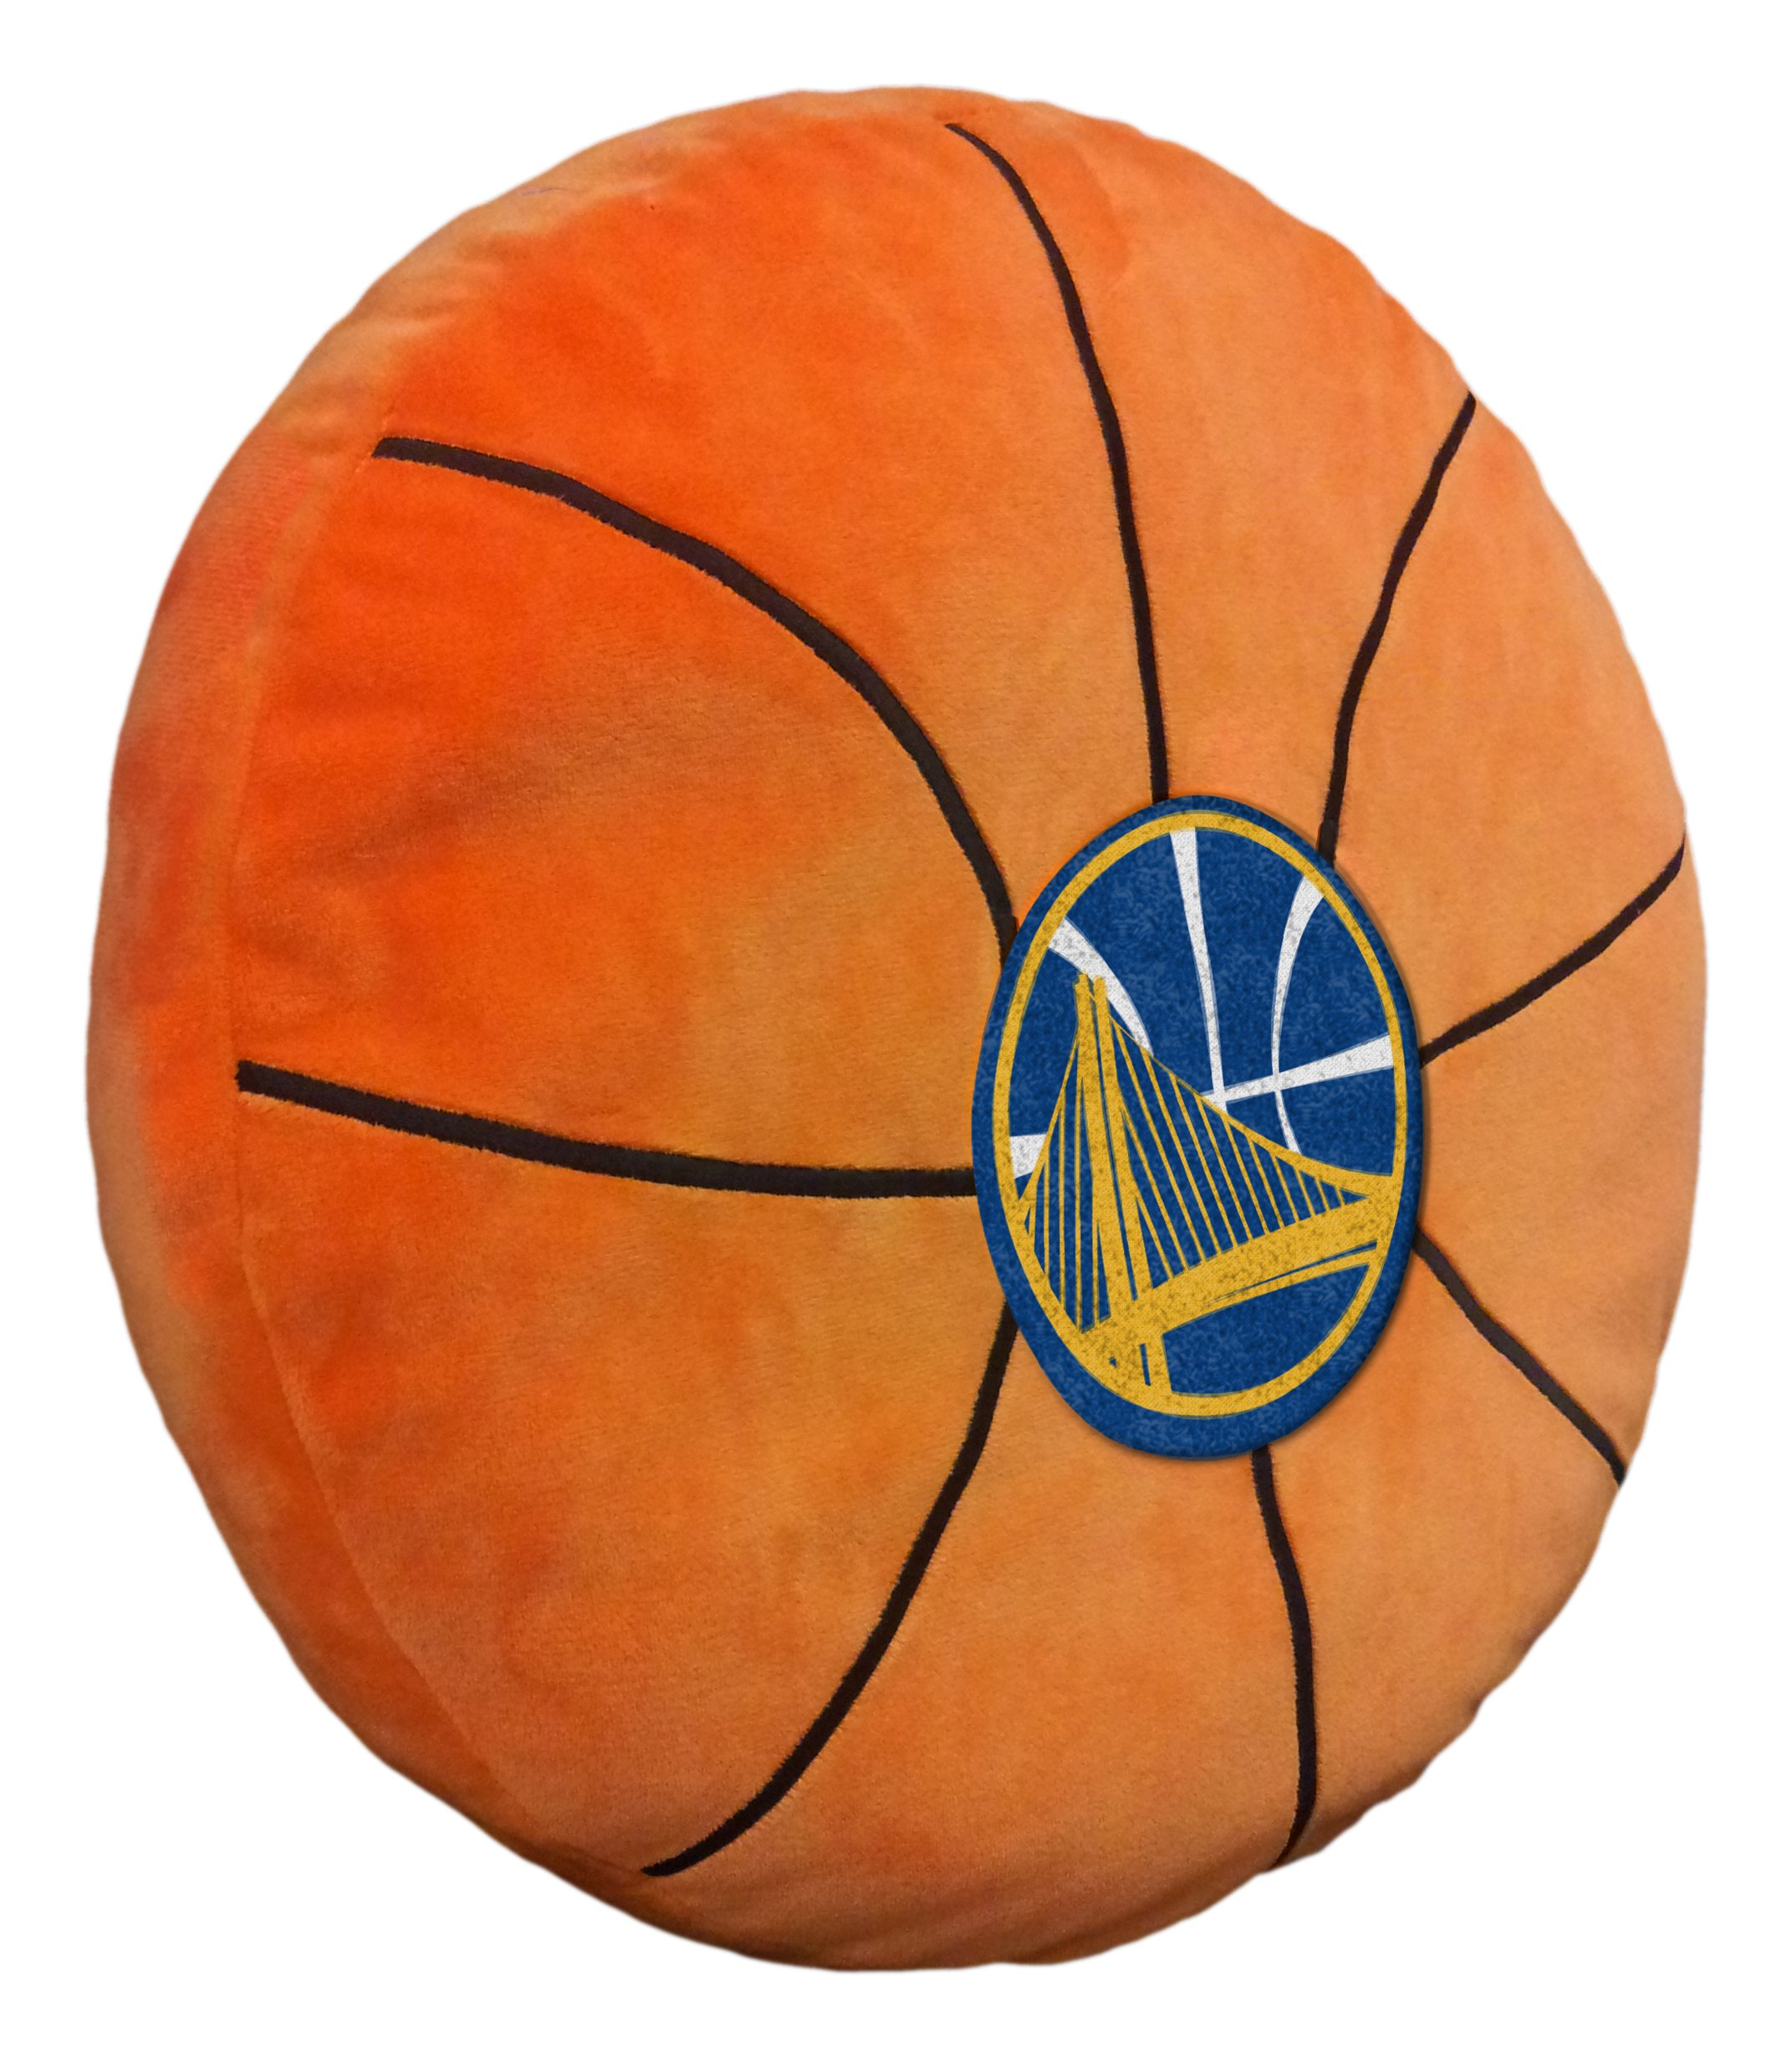 Officially Licensed NBA Golden State Warriors ''3D'' Basketball Shaped Pillow, Orange, 15'' x 15'' x 2'' by The Northwest Company